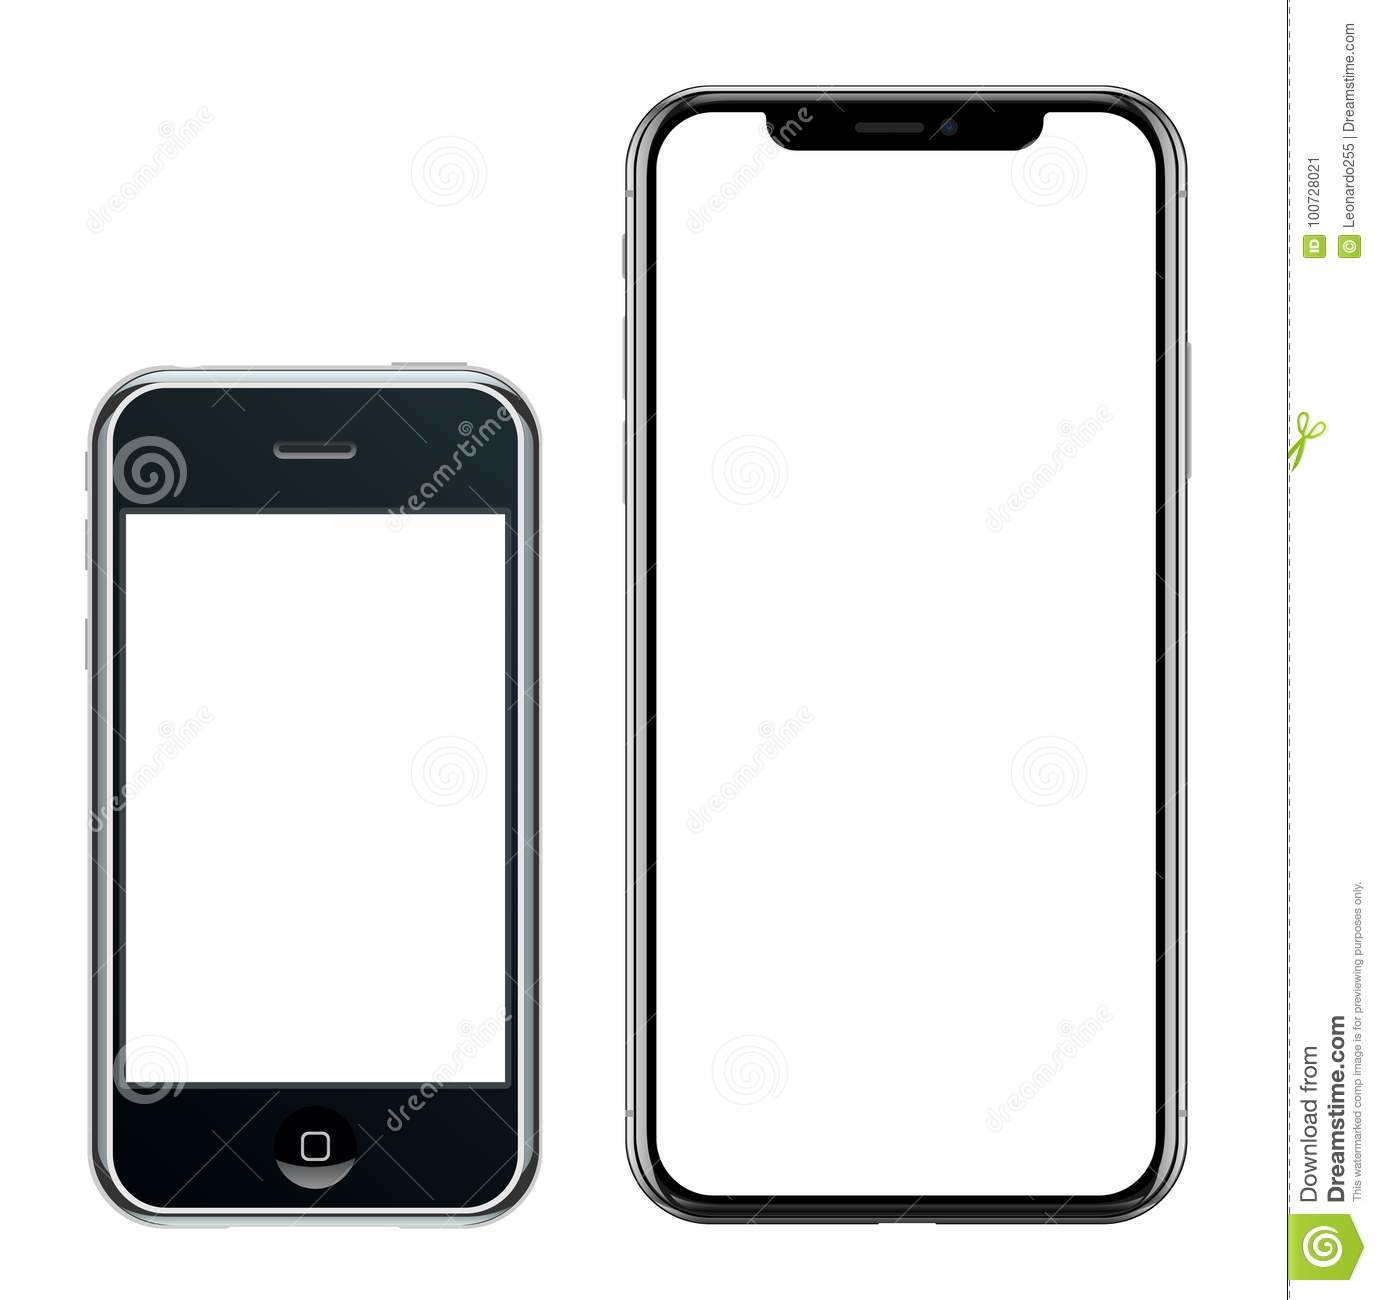 Brand new realistic mobile phone black smartphone in Apple iPhone and iPhone X